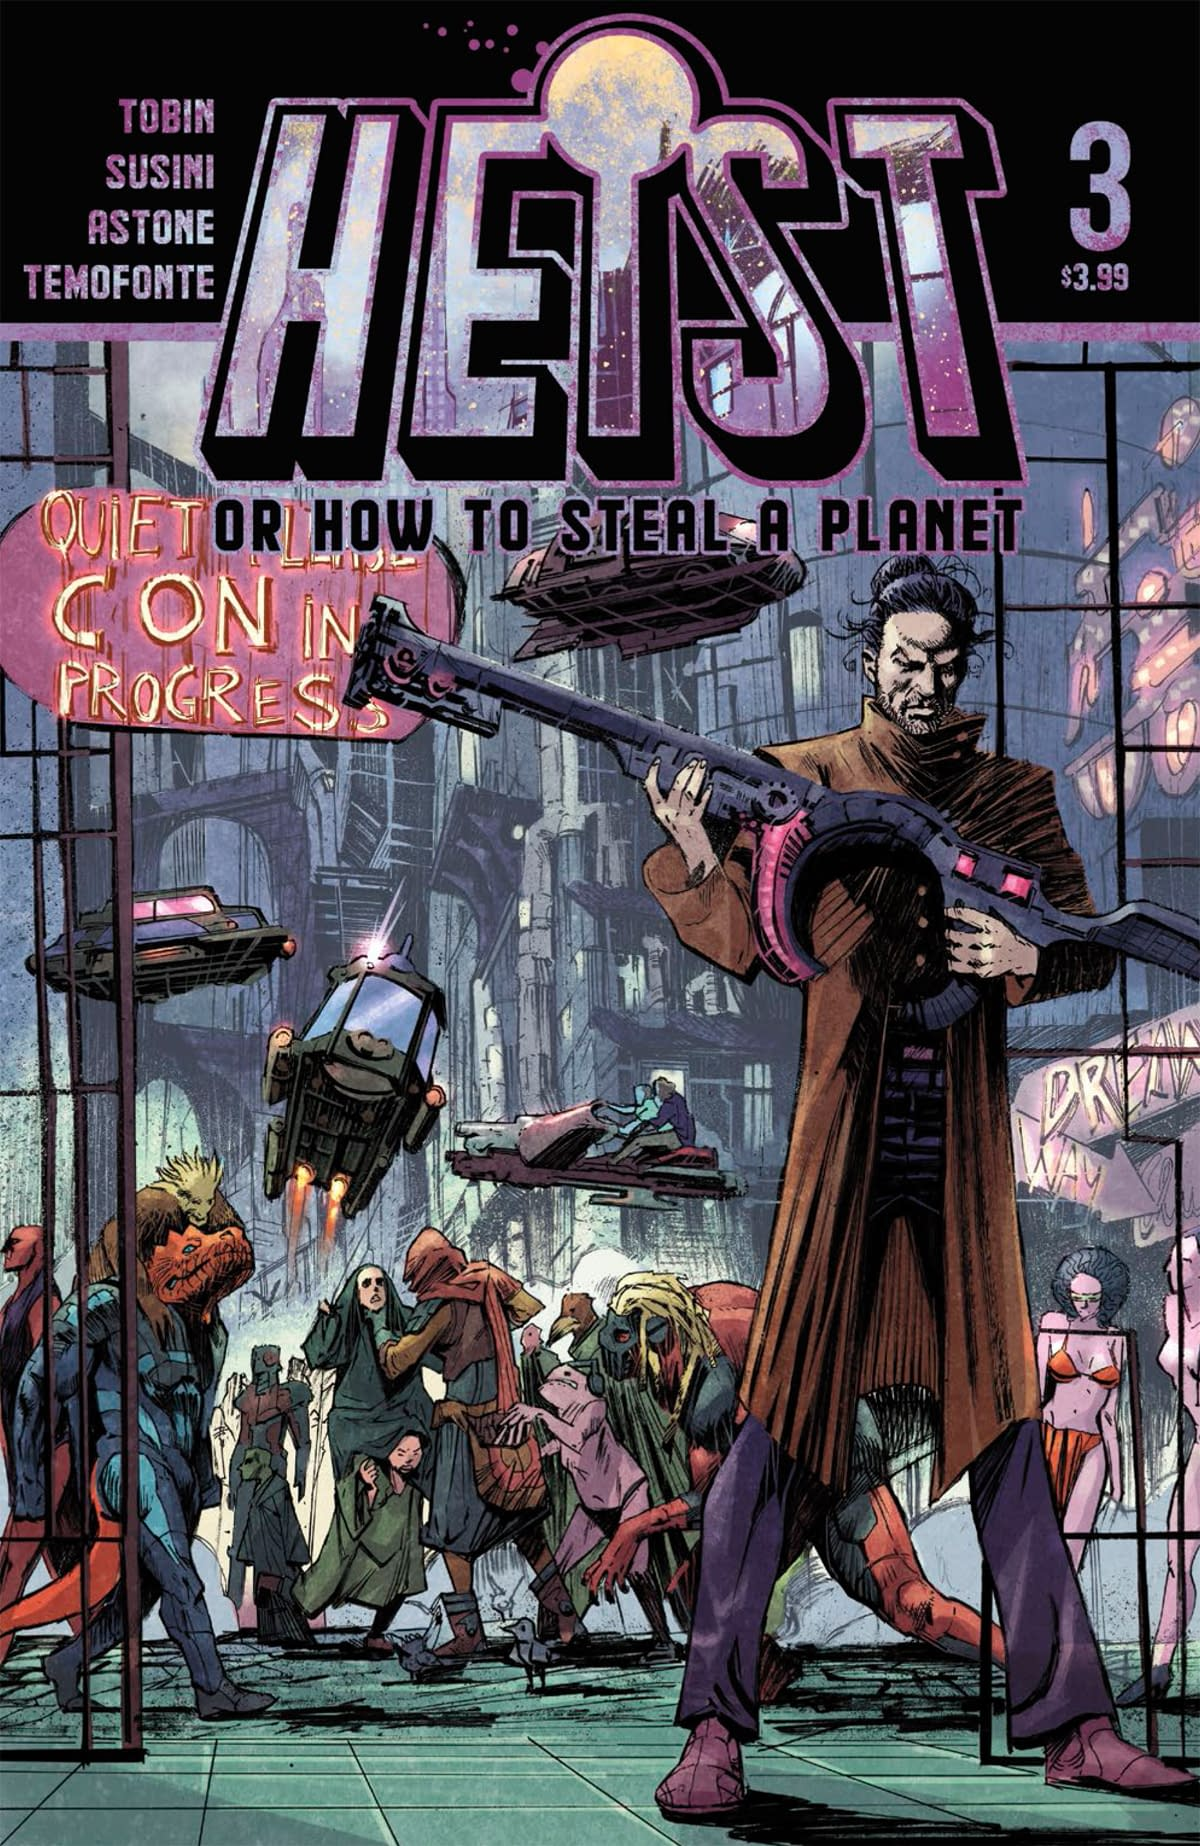 """REVIEW: Heist How To Steal A Planet #3 -- """"Numerous Wicked Twists Of Misdirection"""""""